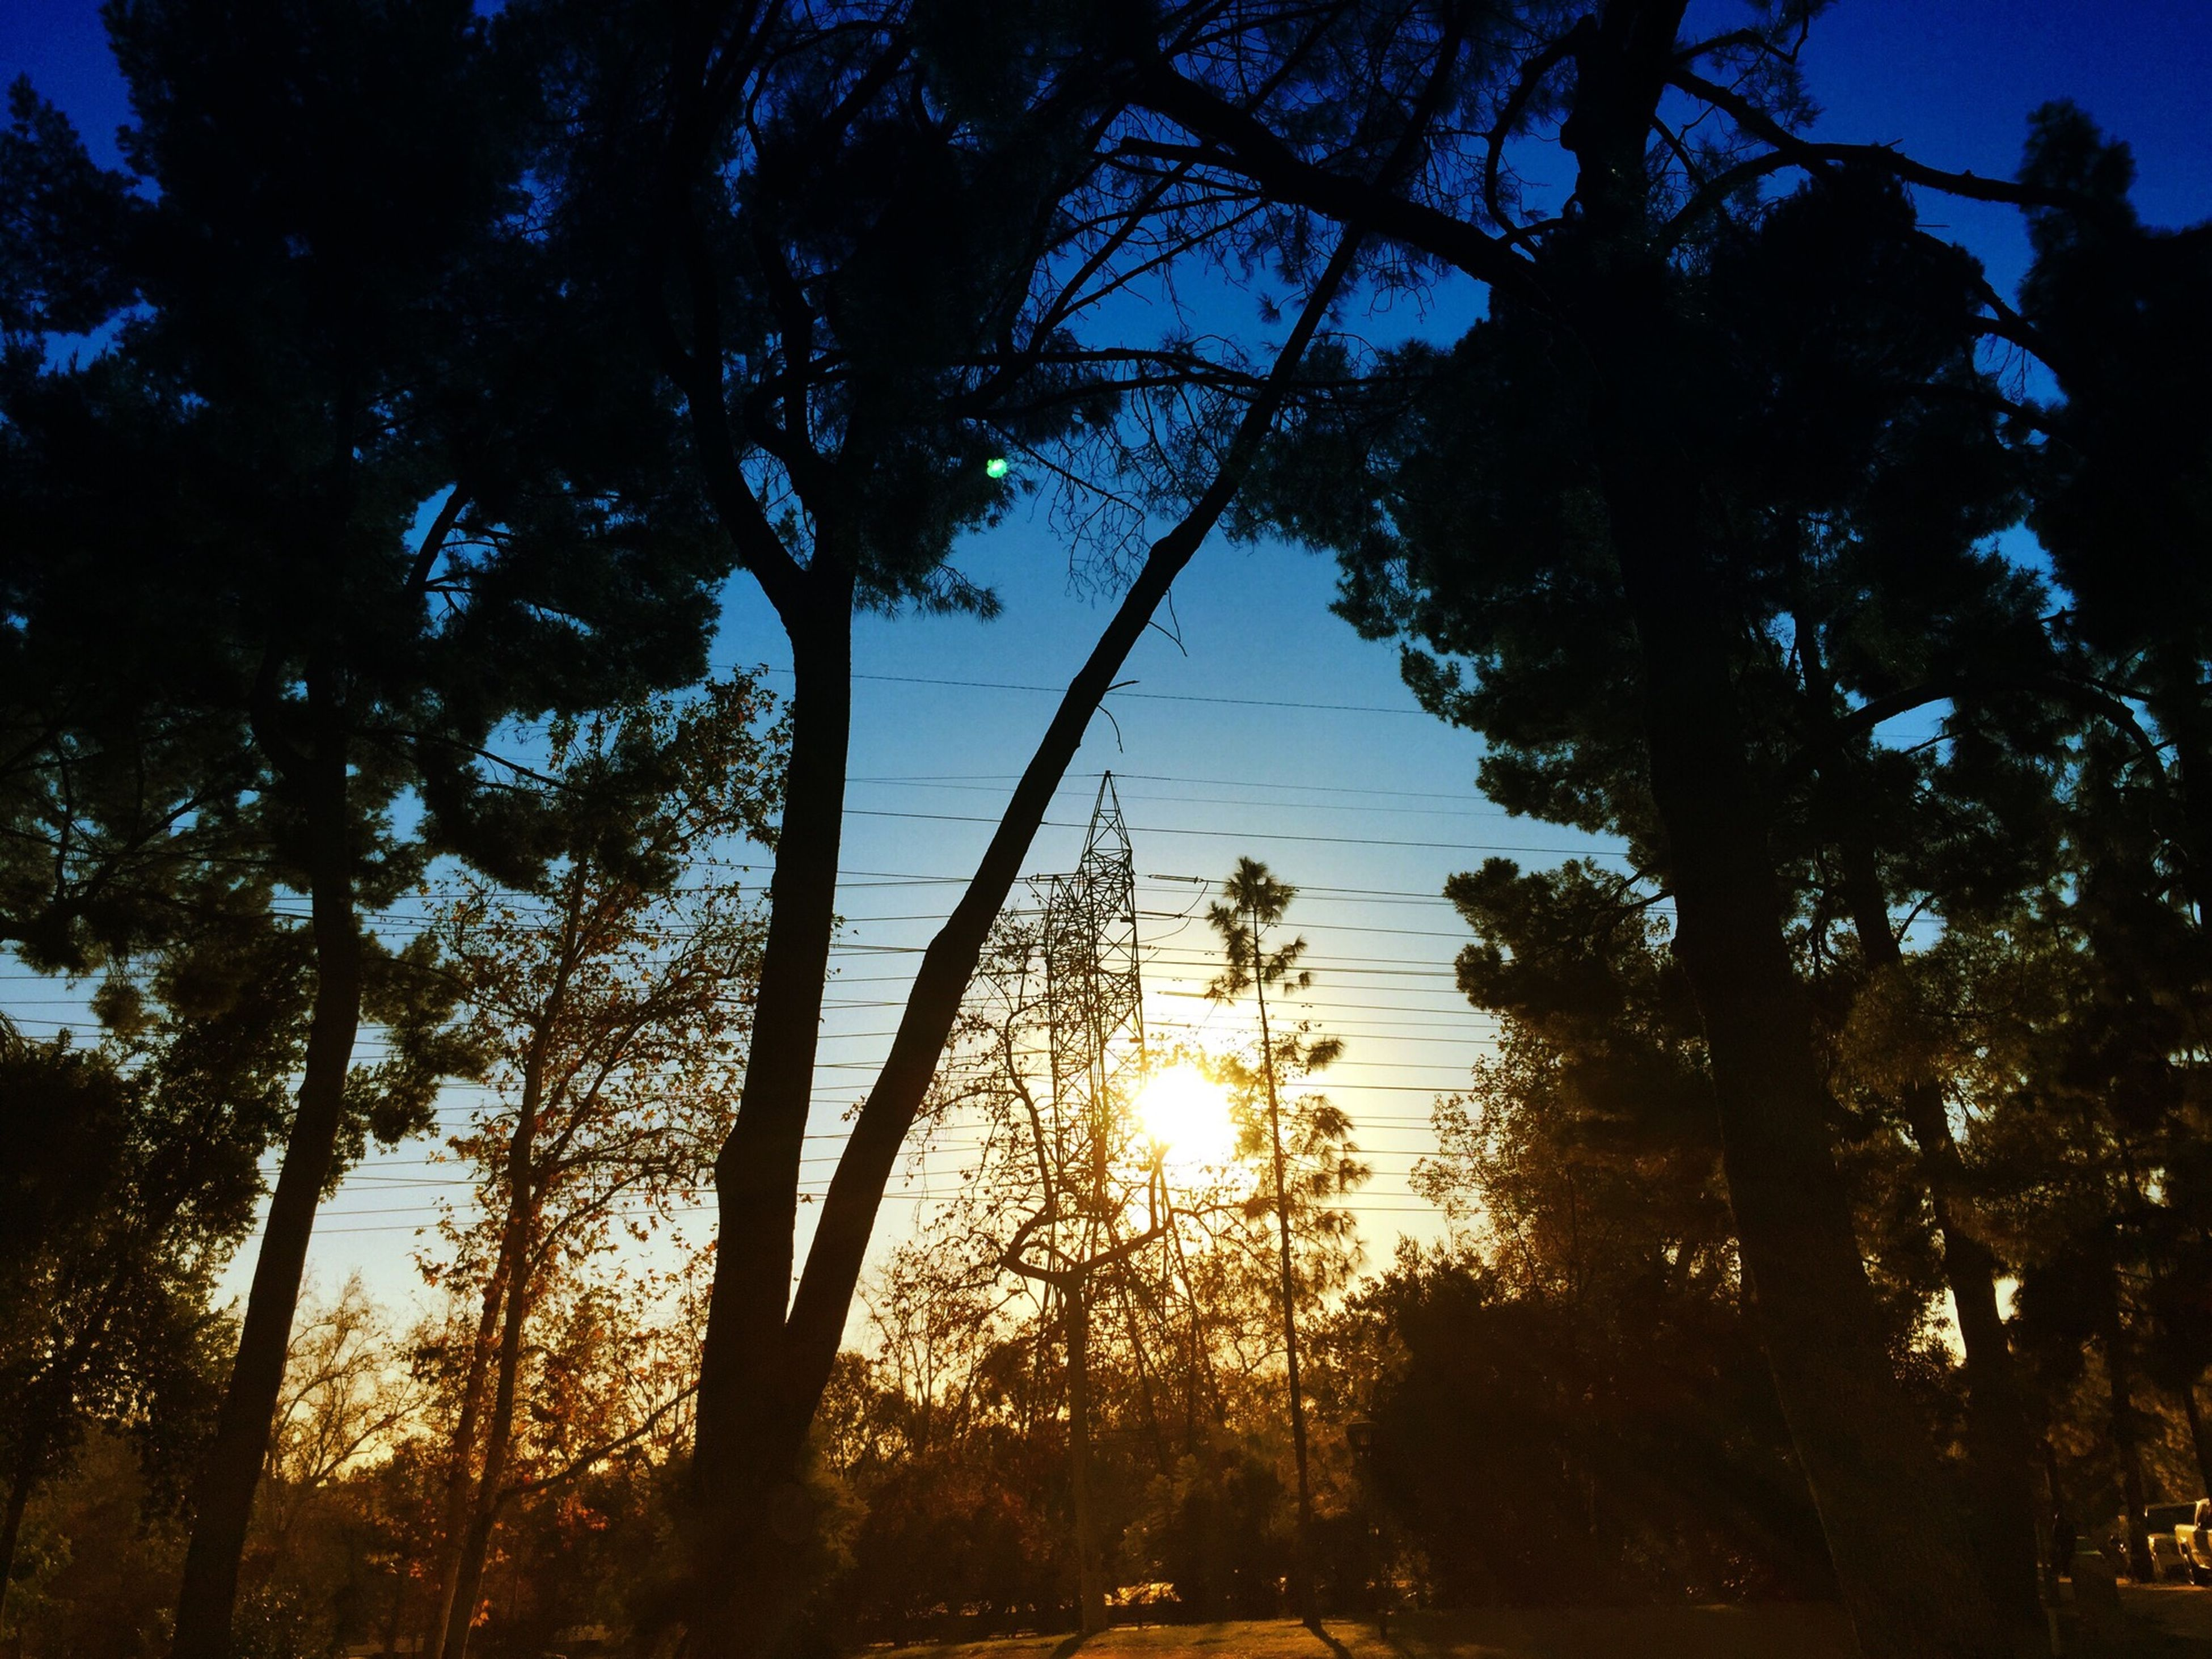 tree, tranquility, silhouette, growth, beauty in nature, tranquil scene, branch, nature, scenics, sky, sunset, sun, low angle view, sunlight, tree trunk, idyllic, blue, outdoors, clear sky, no people